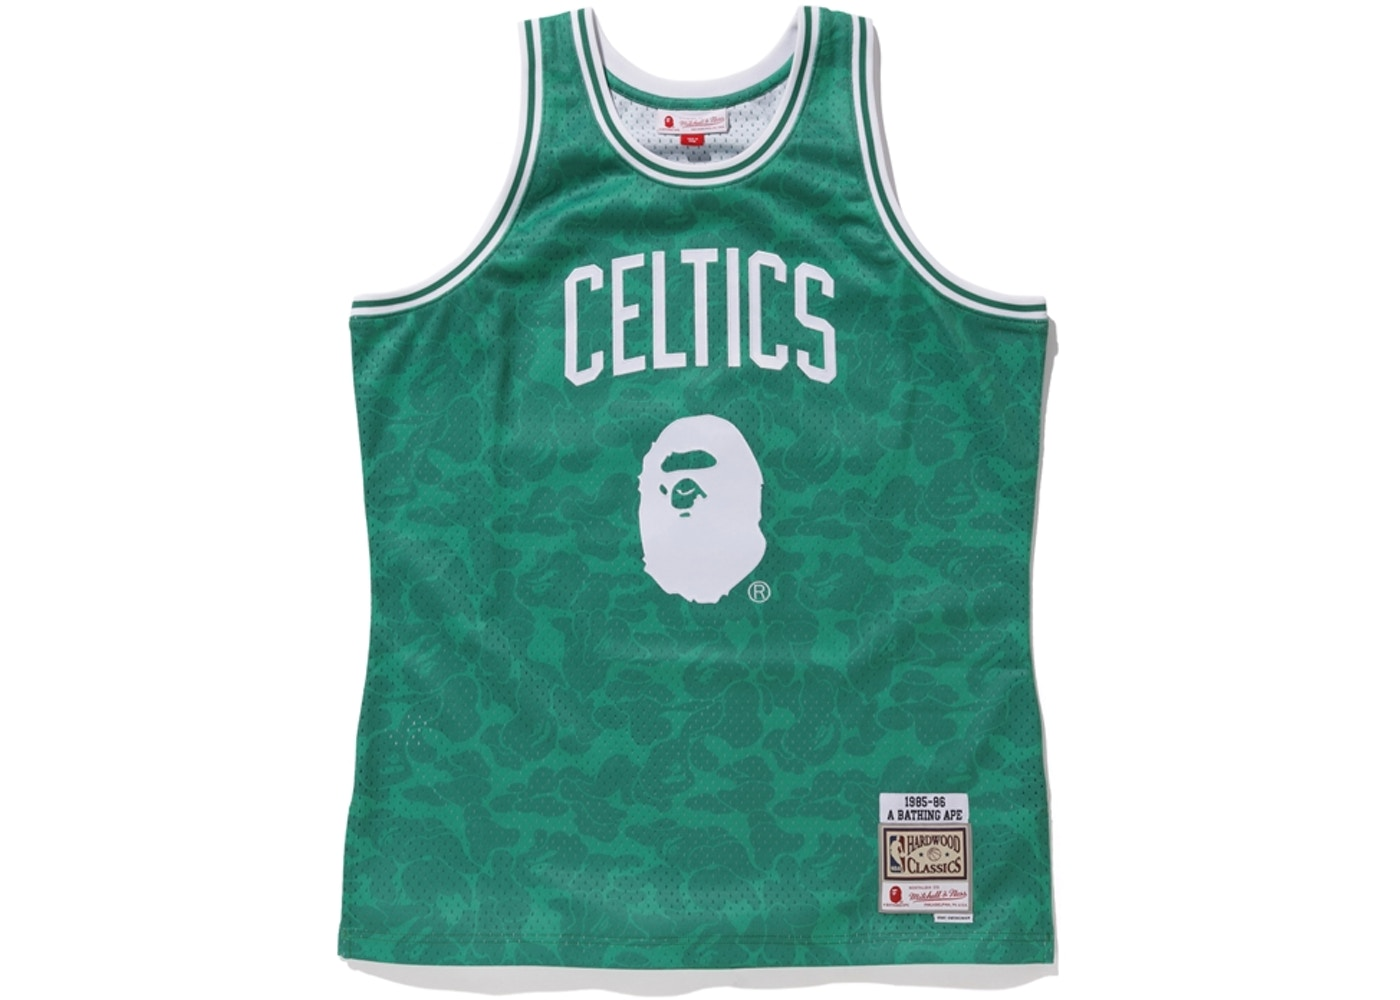 fcc0e25d0c3 BAPE x Mitchell & Ness Celtics ABC Basketball Swingman Jersey Green